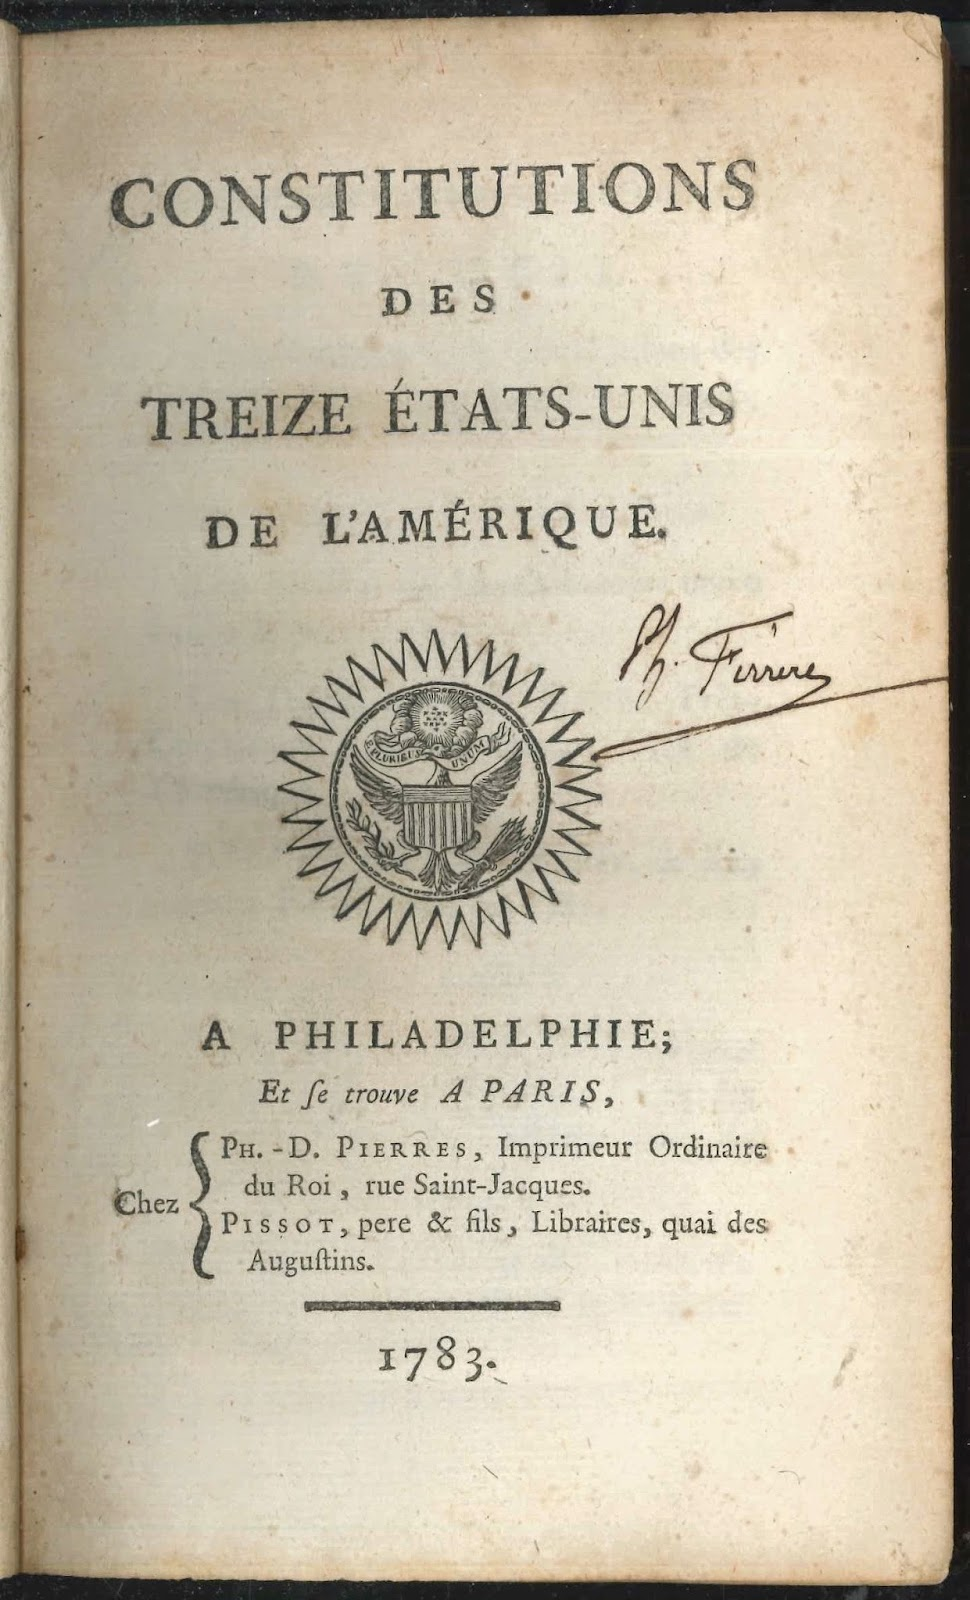 A title page for the Constitution in French.